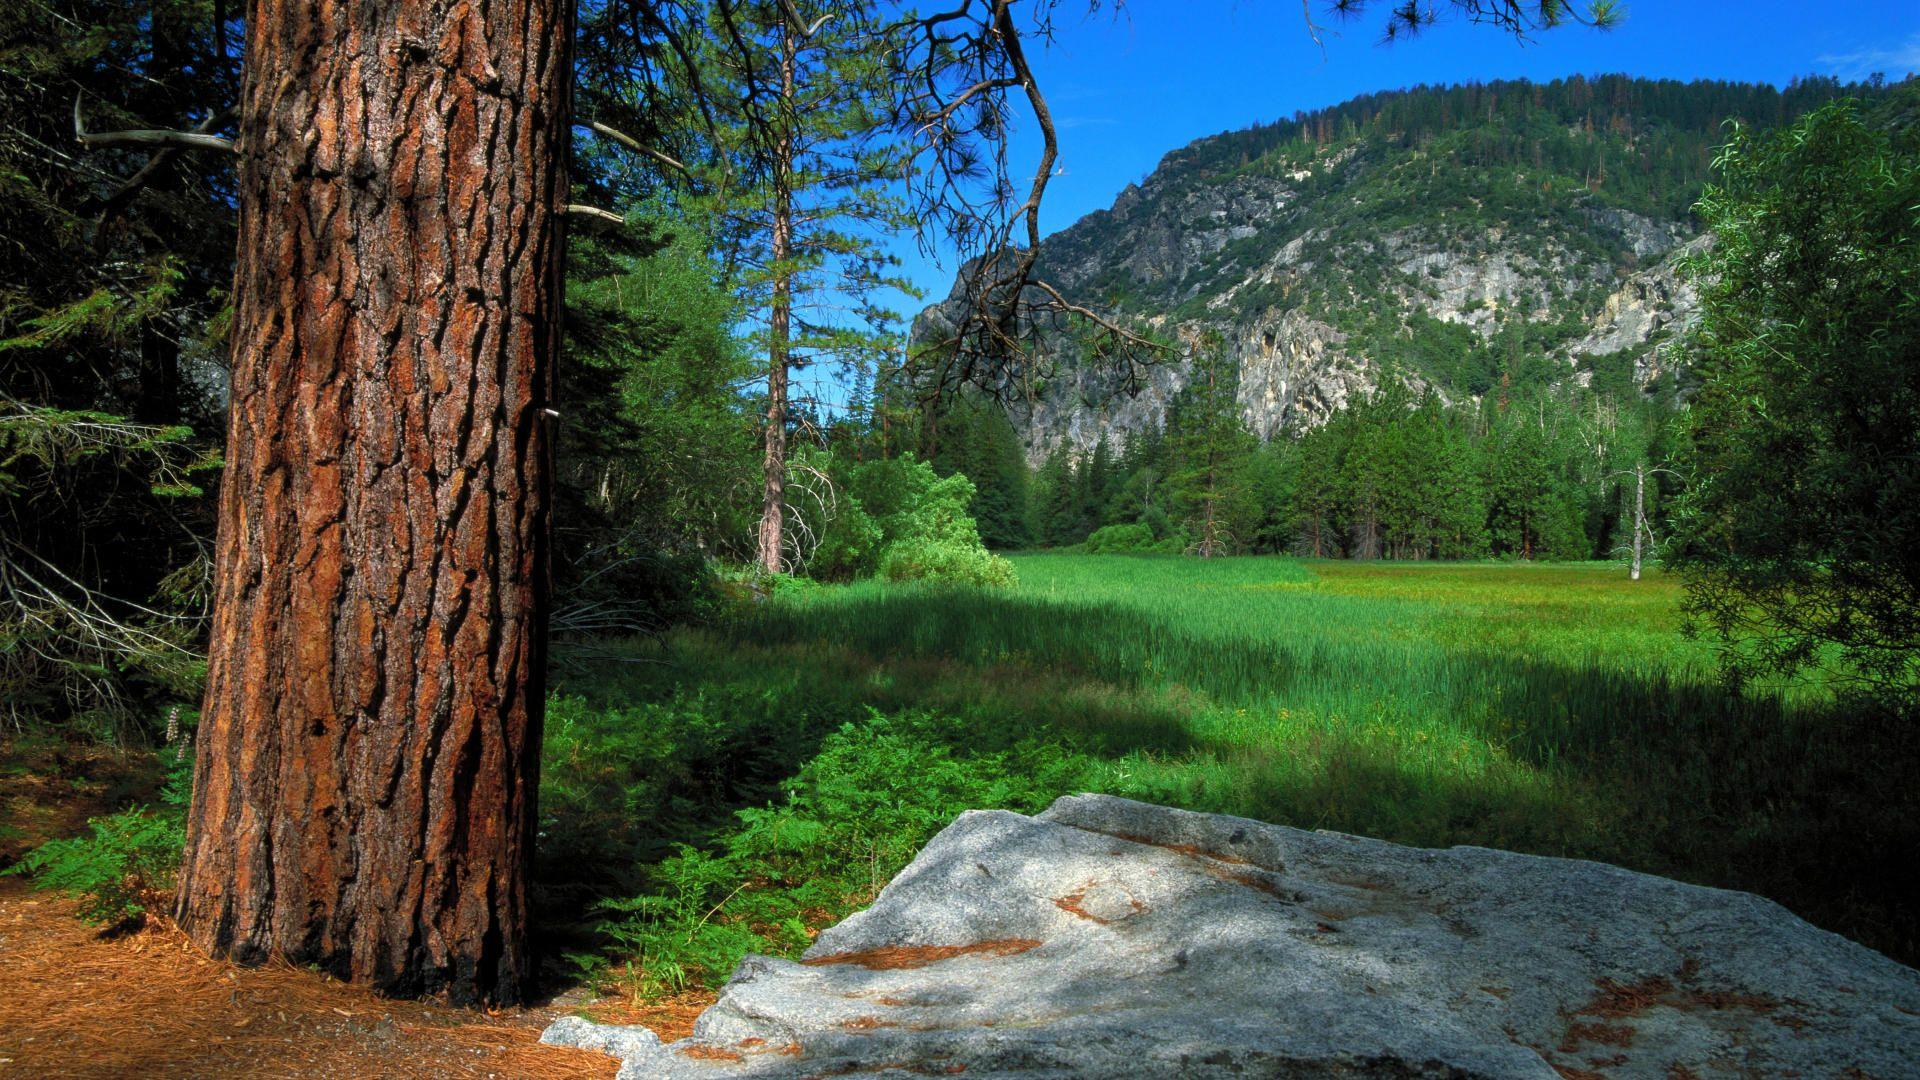 Zumwalt Meadow Trail, Sequoia and Kings Canyon National Parks